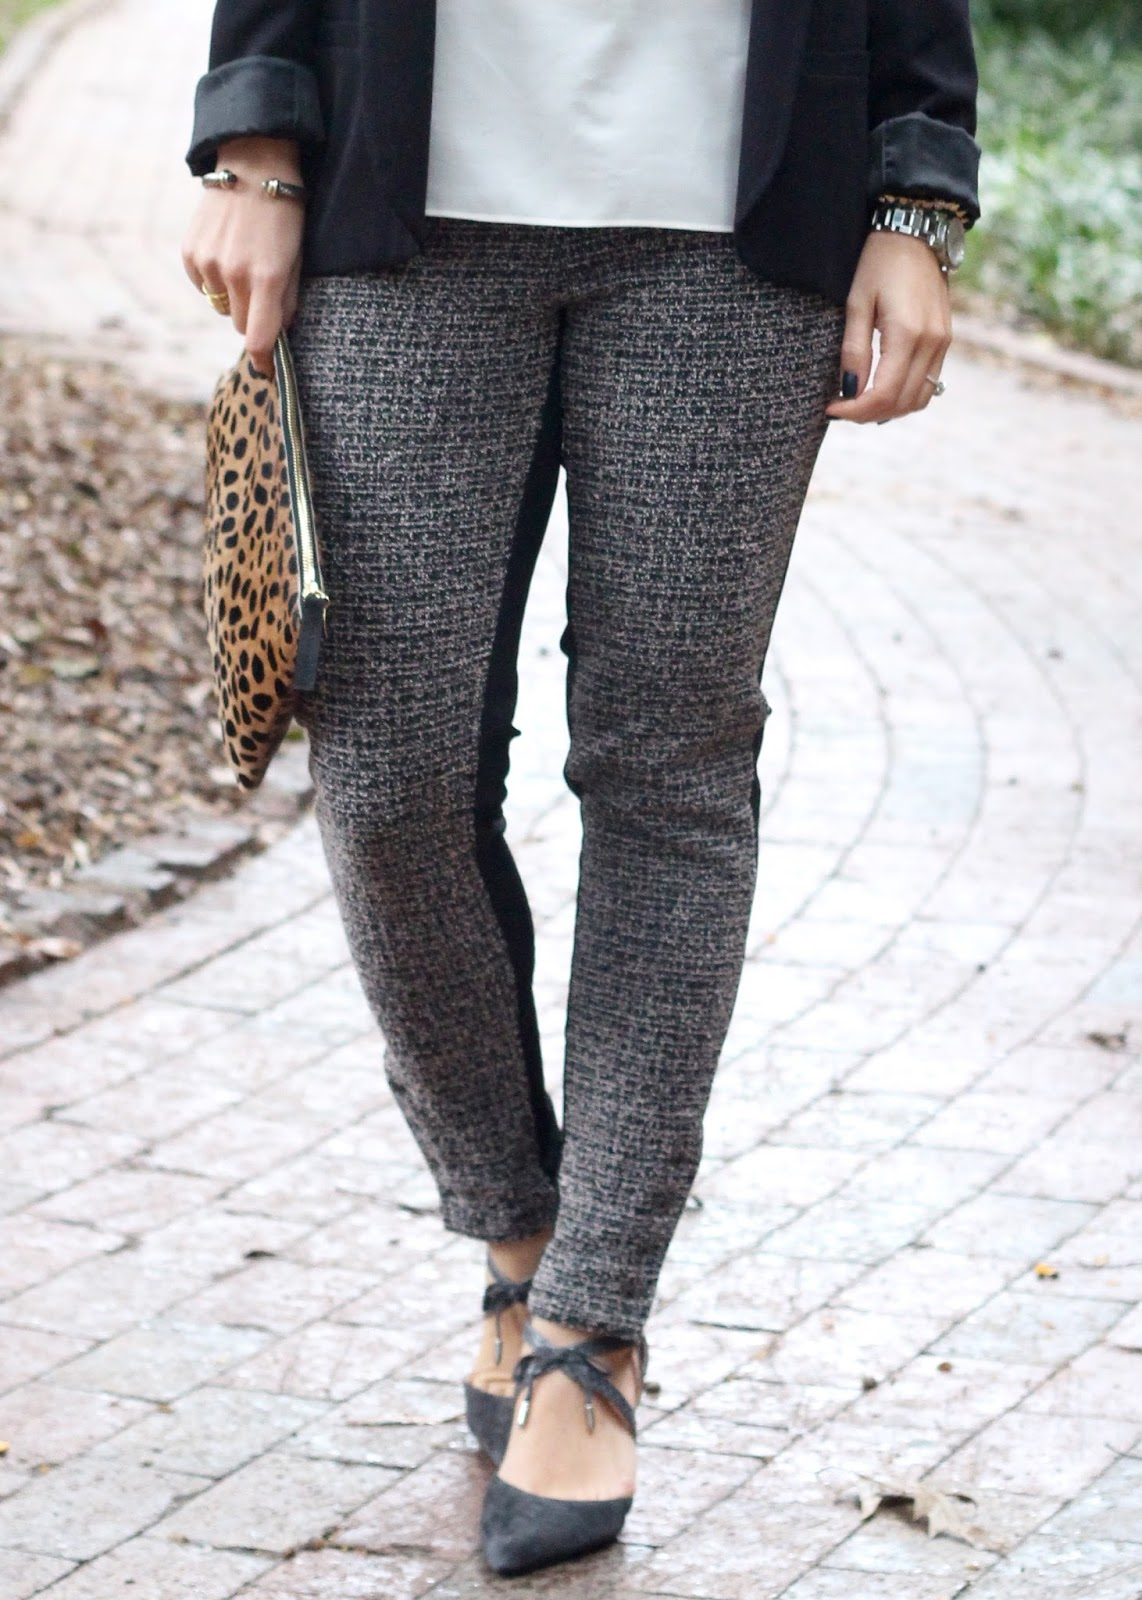 Tweed Leggings (That You Can Wear to Work!)